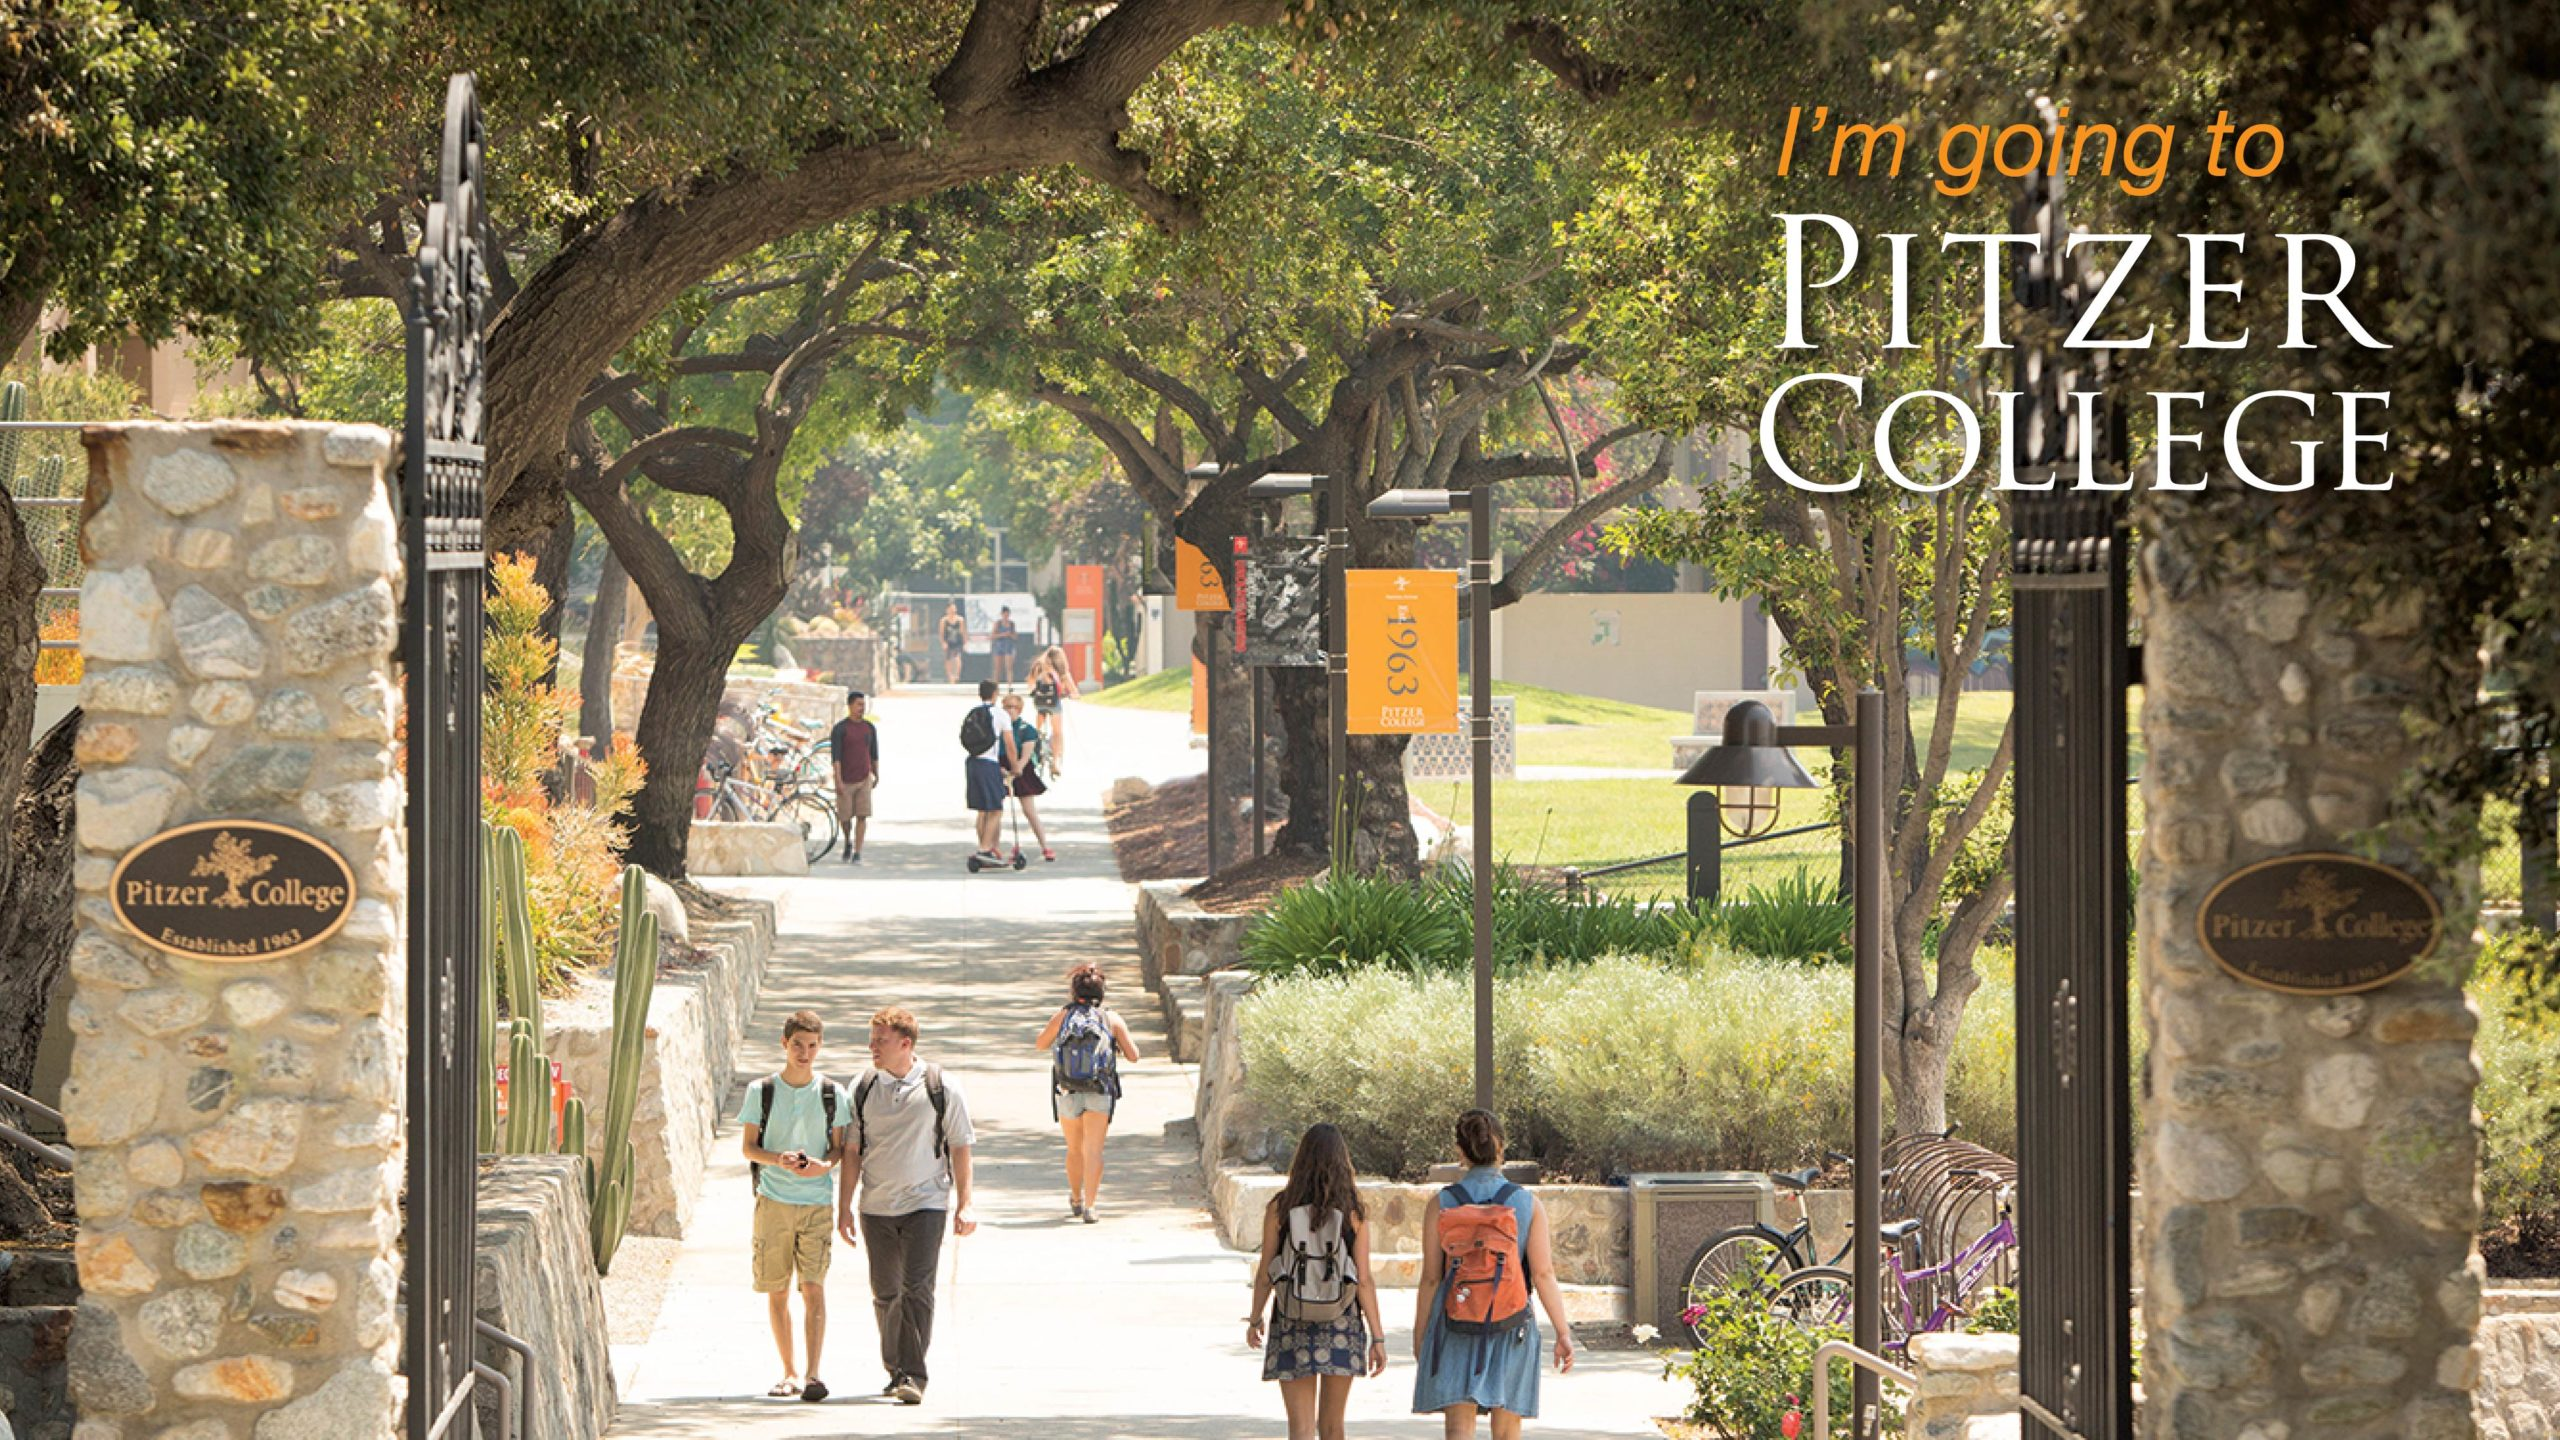 I'm going to Pitzer College!